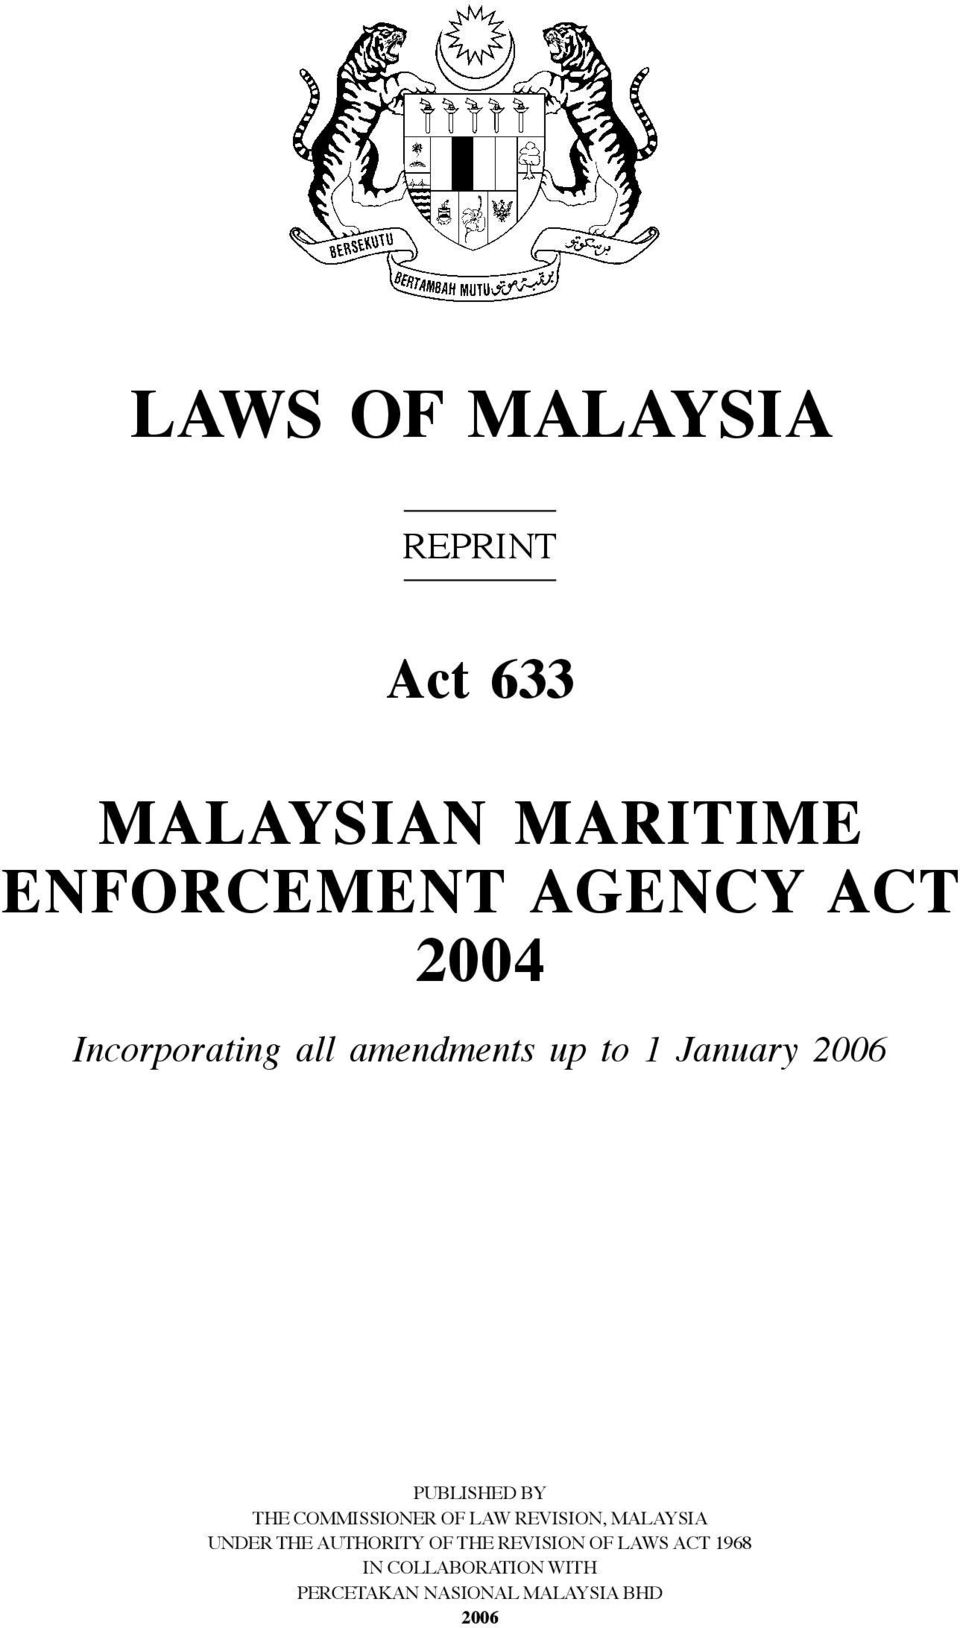 2006 Published by The Commissioner of Law revision, Malaysia Under the Authority of